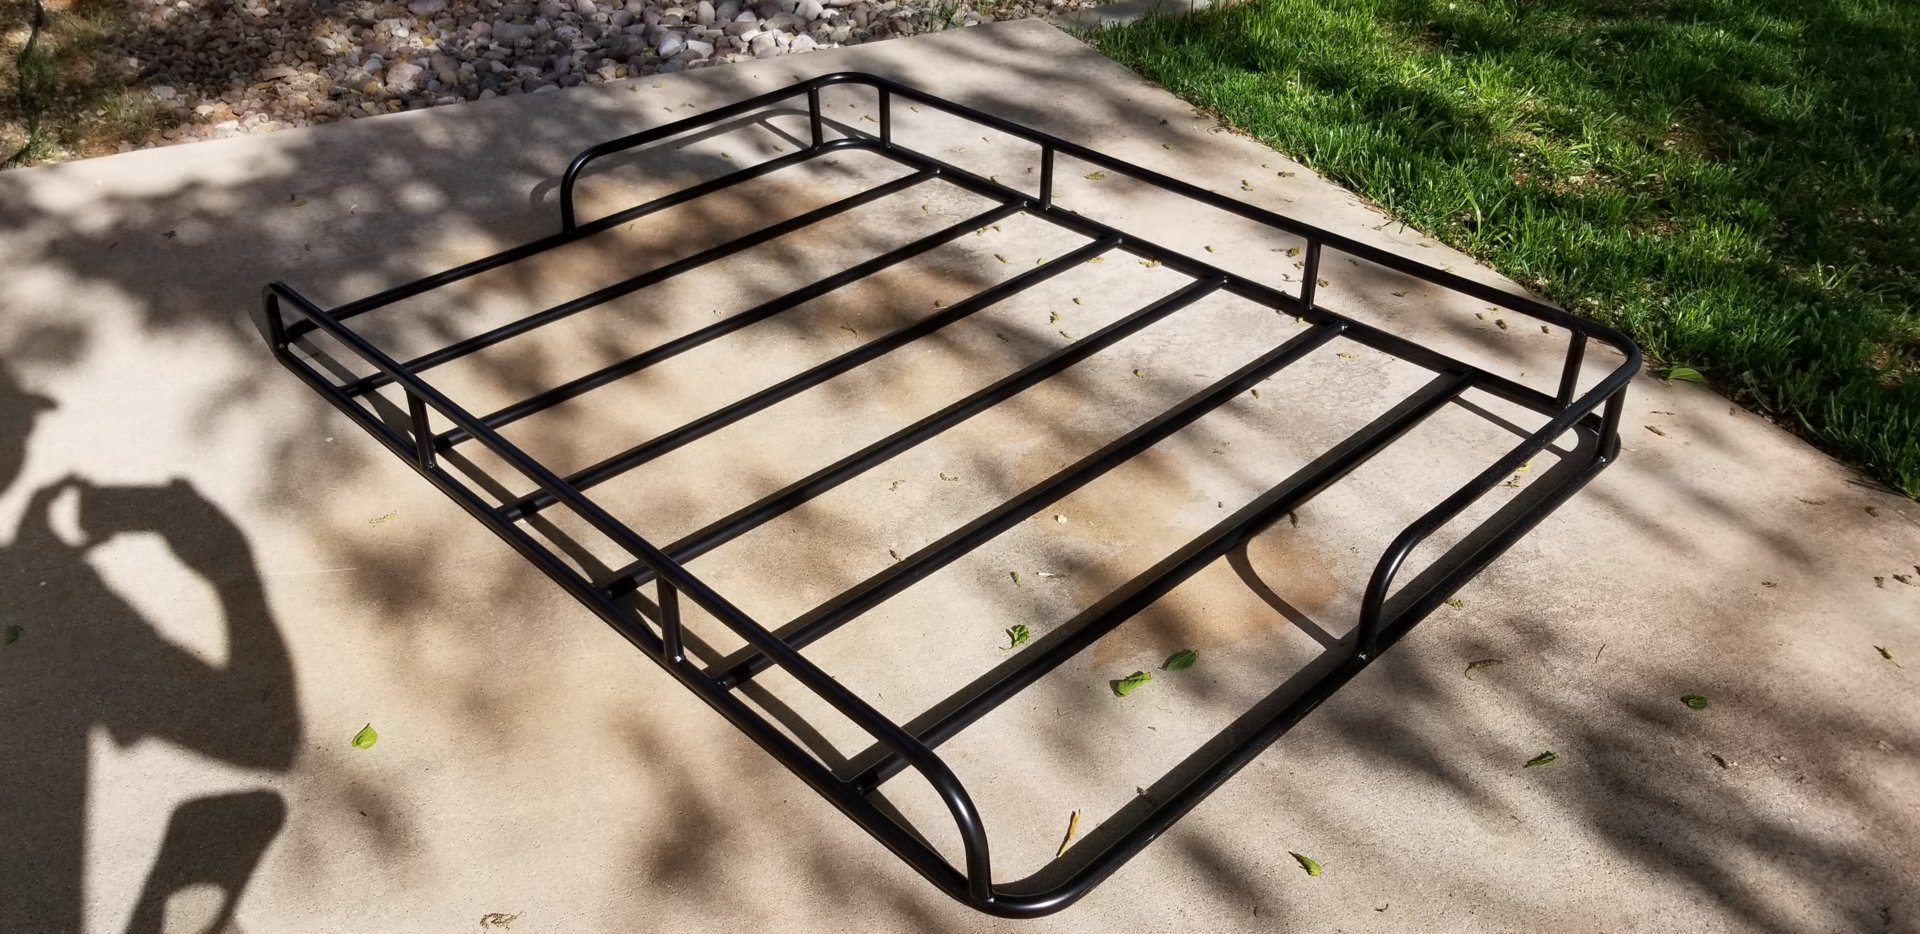 For Sale St George Ut Roof Rack 51x67 New Price